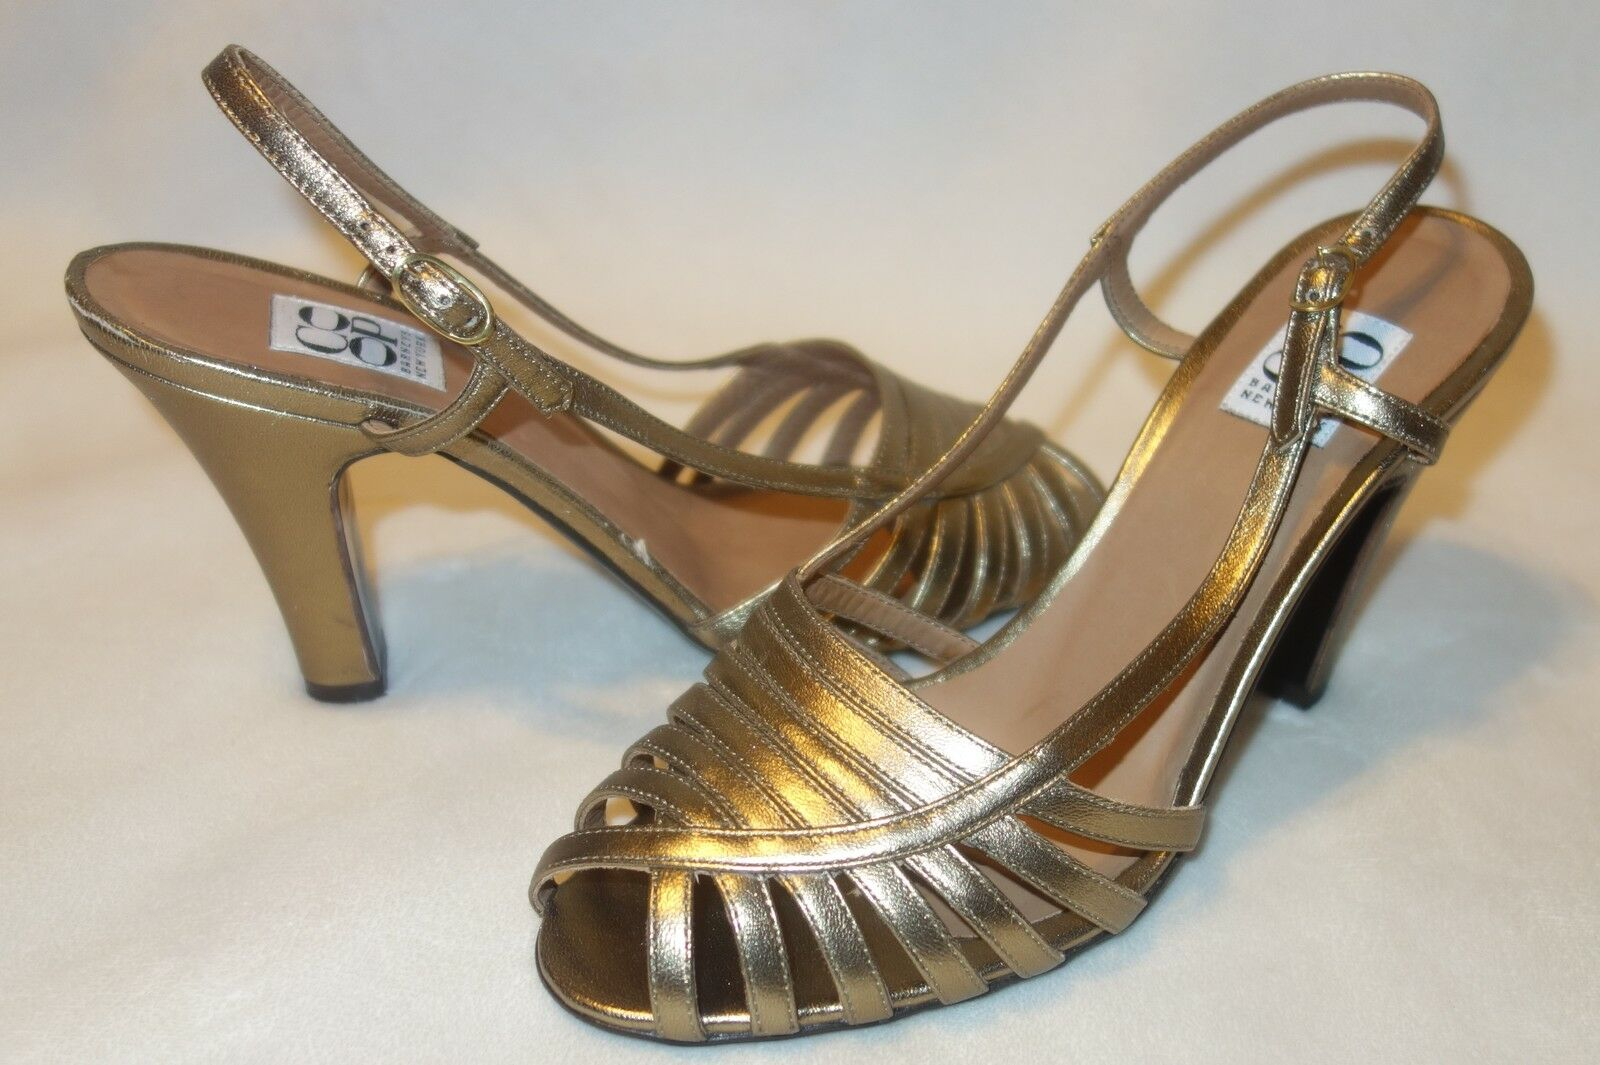 Barneys Co-op Schuhes - Gold new Leder Sandales SZ 38.5 new Gold 94a99d